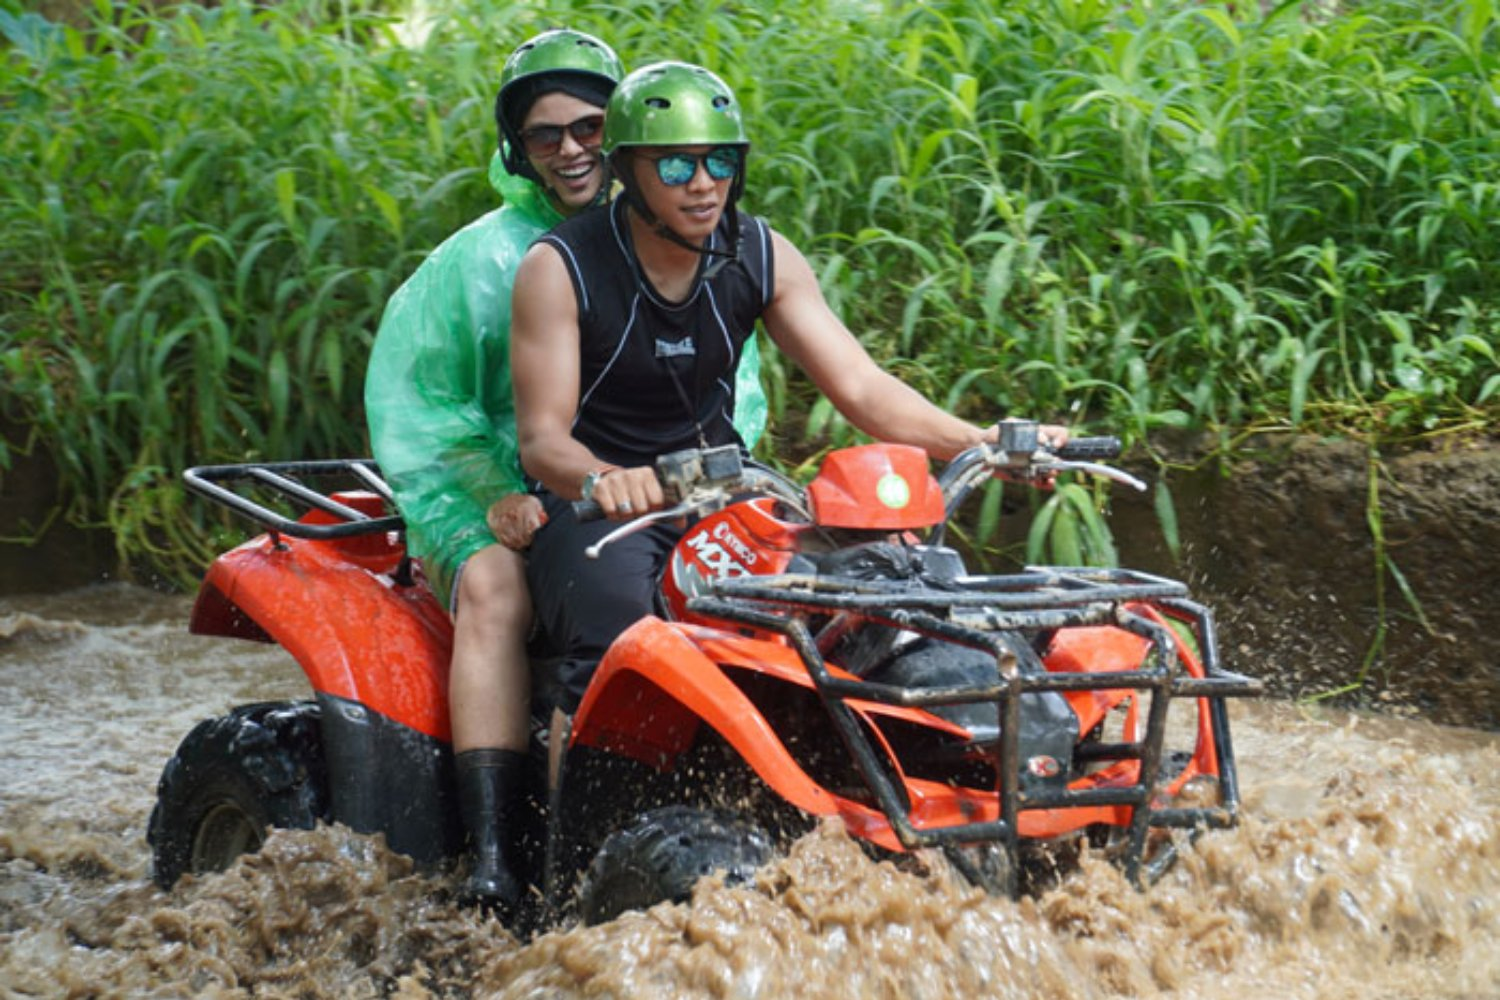 Use Safety Equipment in ATV Bike Adventure